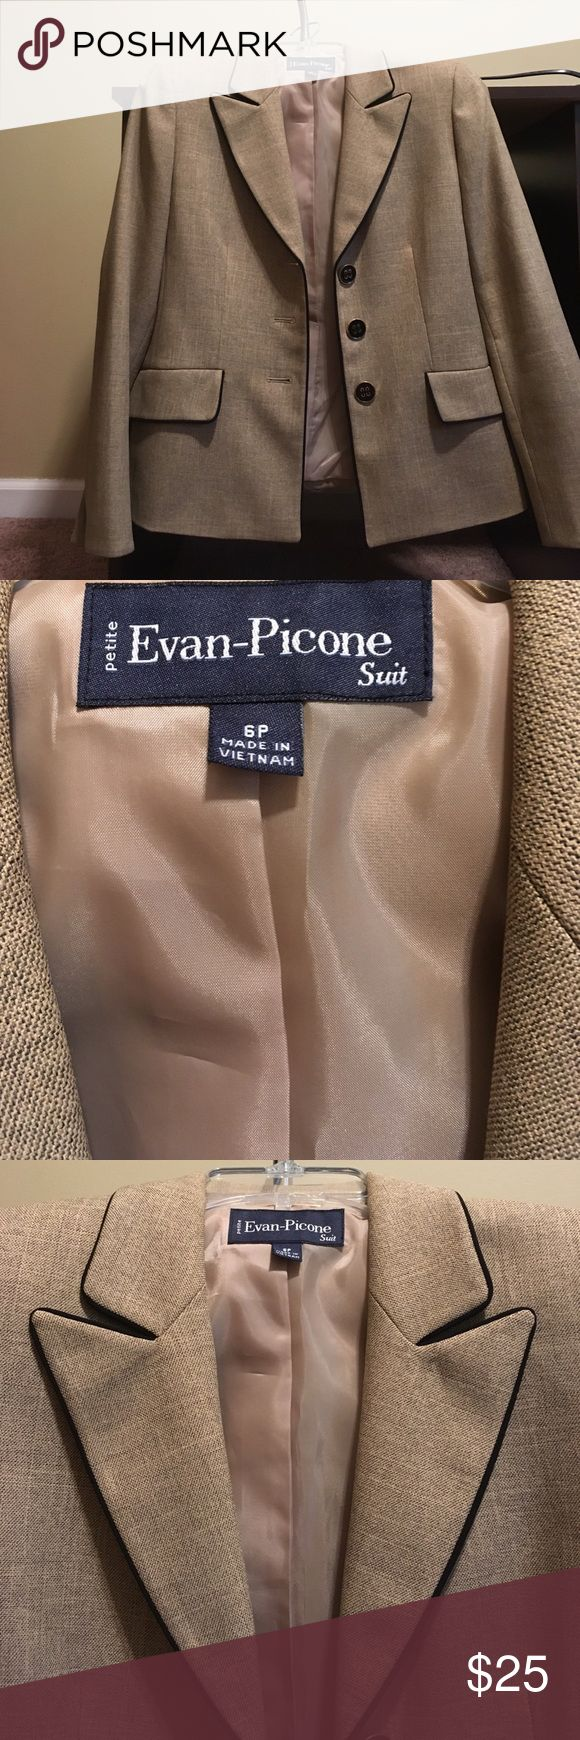 Size 6P Ebony -Picone Suit Jacket See tag pic for details Other